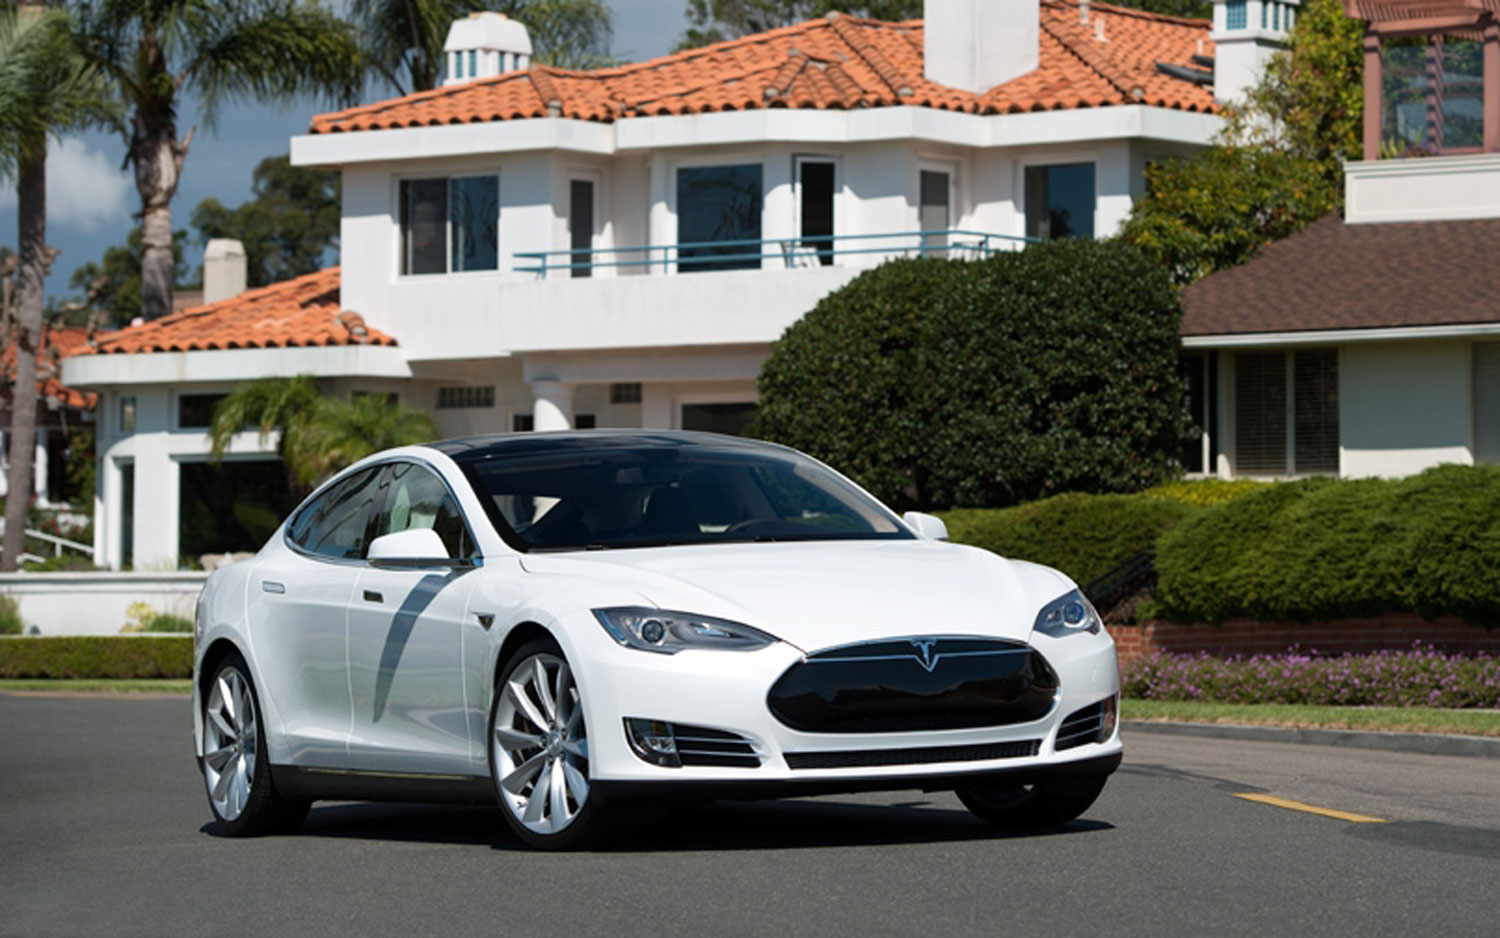 2013 Tesla Model S White Front Right Side